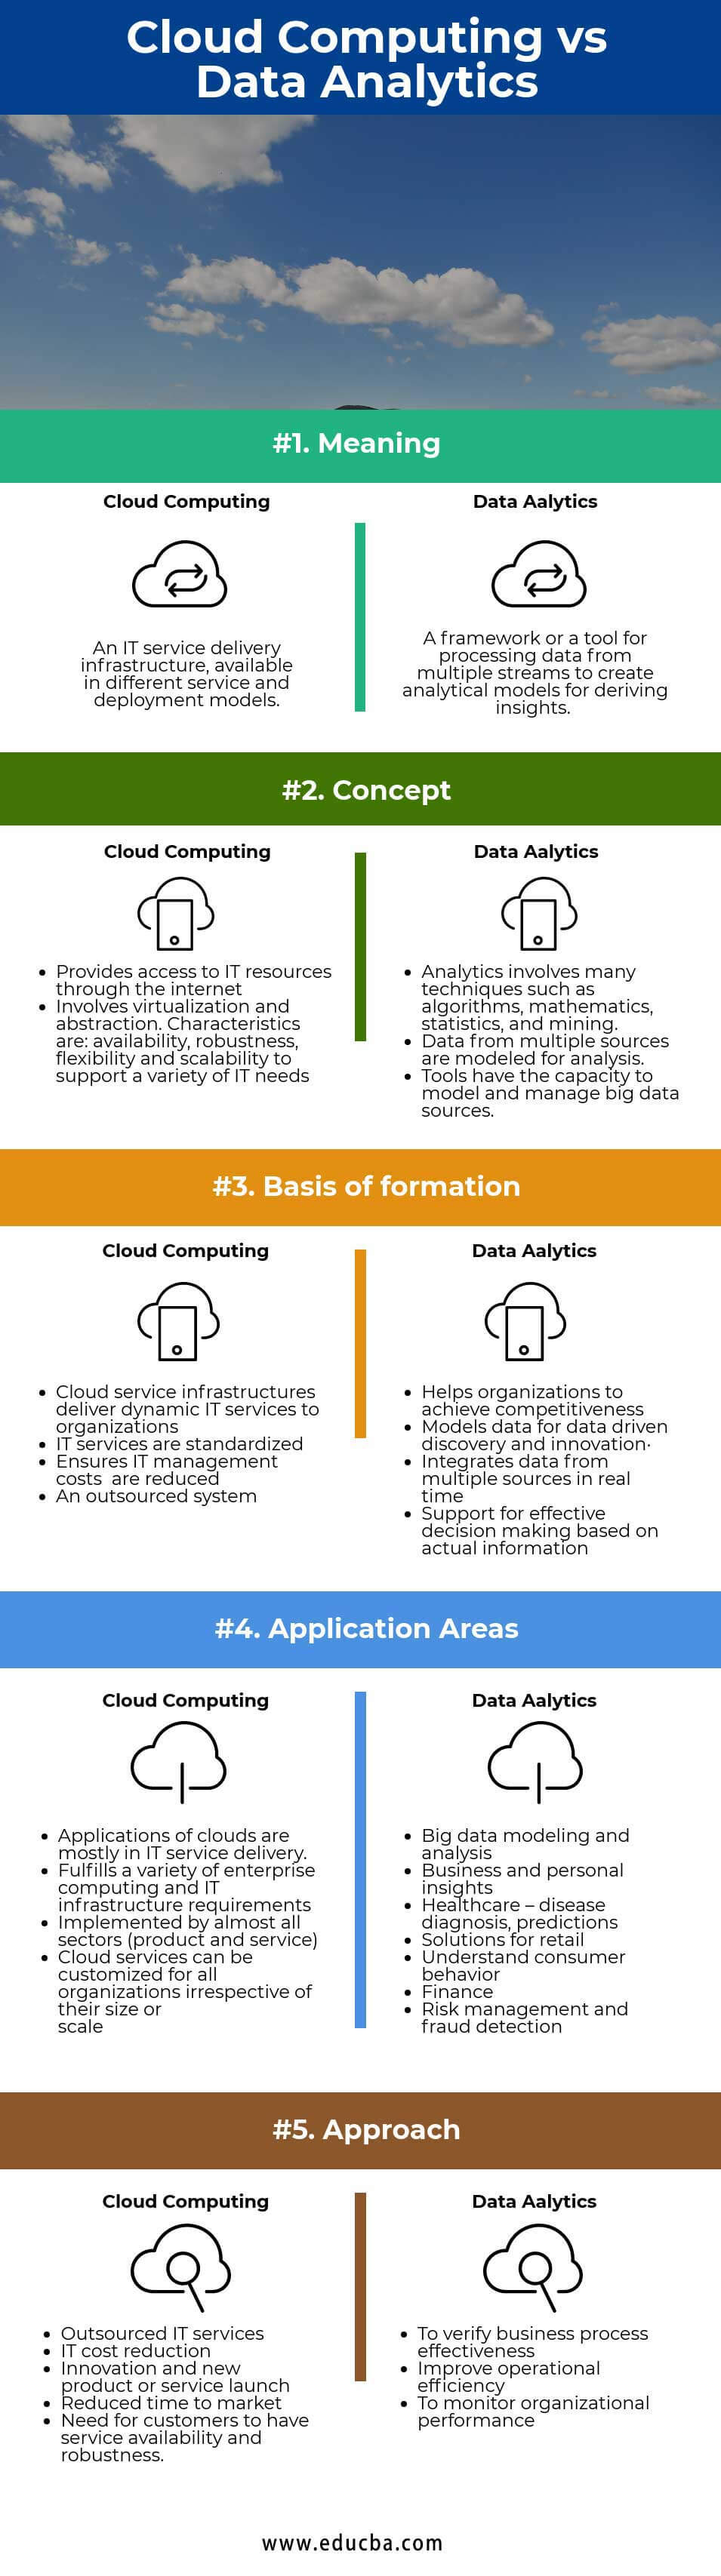 Cloud Computing vs Data Analytics Infographics